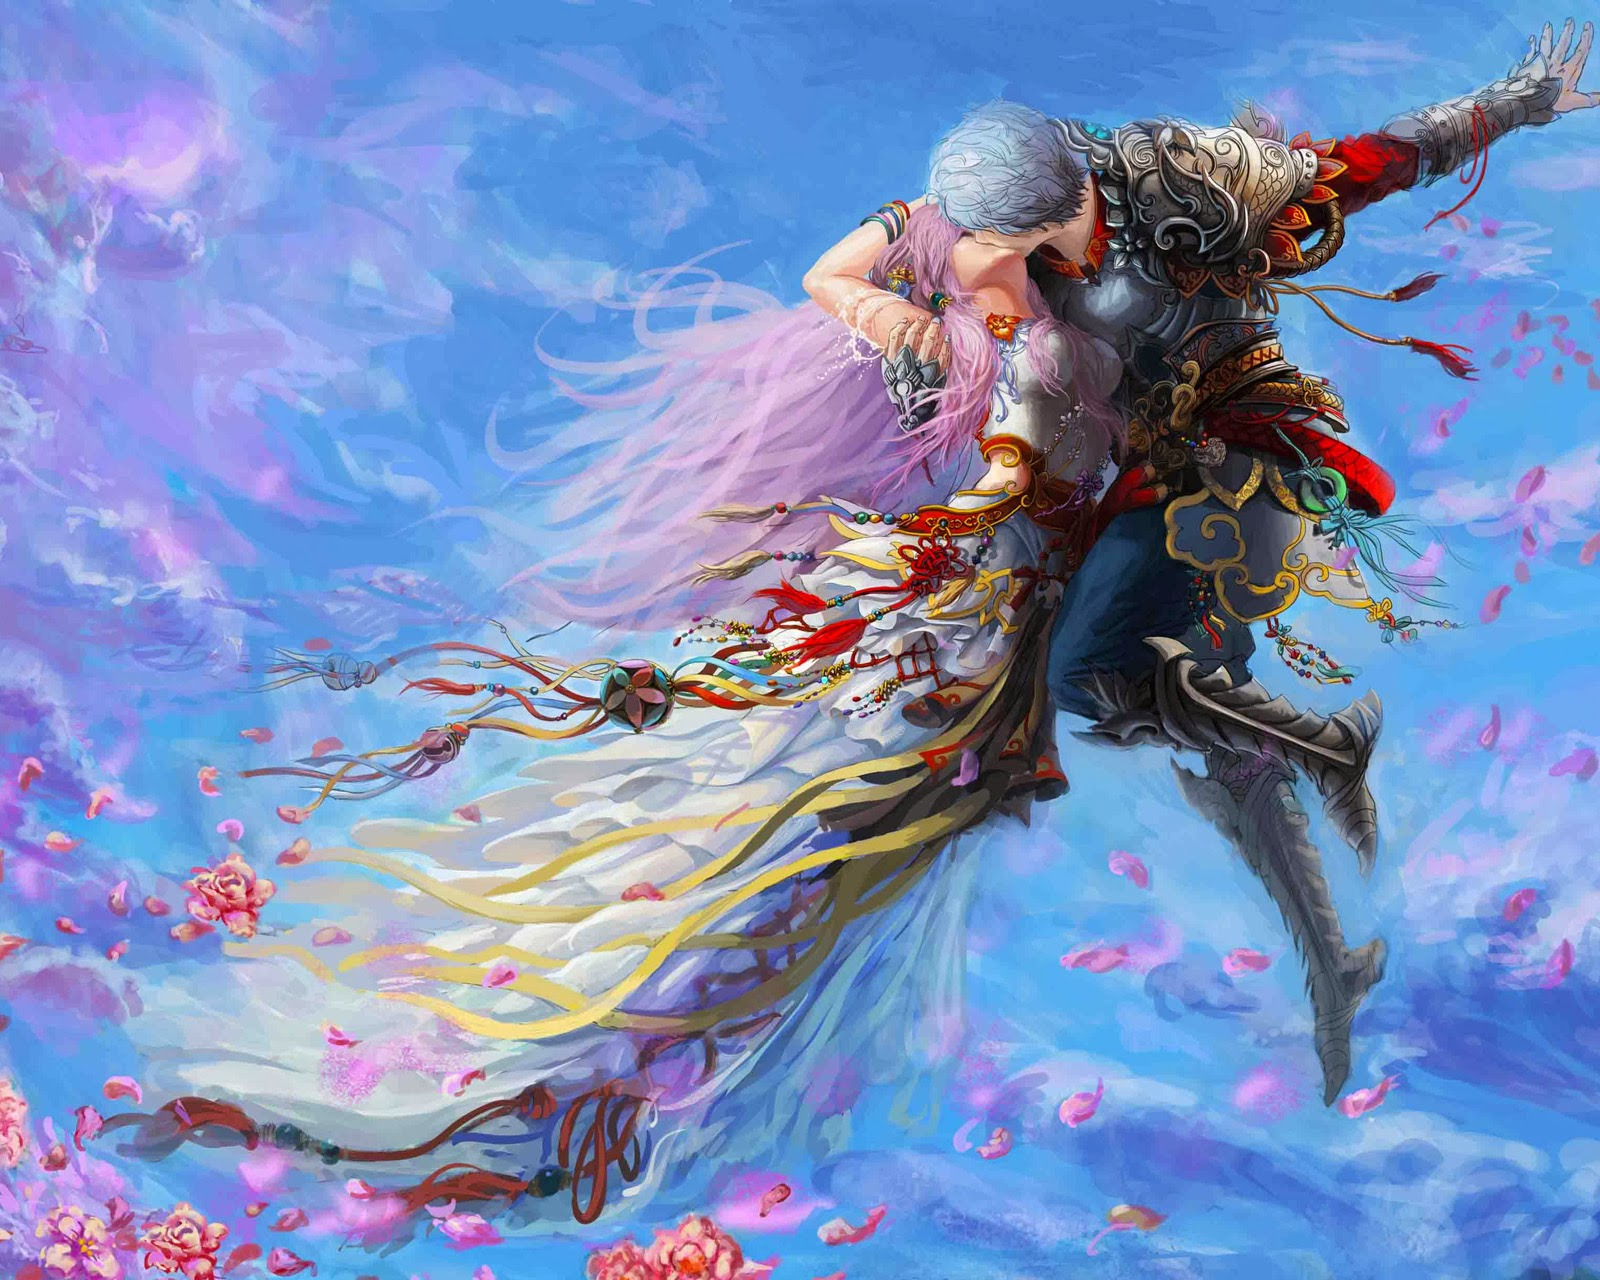 Lovers-kissing-painting-digital-CG-images-HD-download.jpg